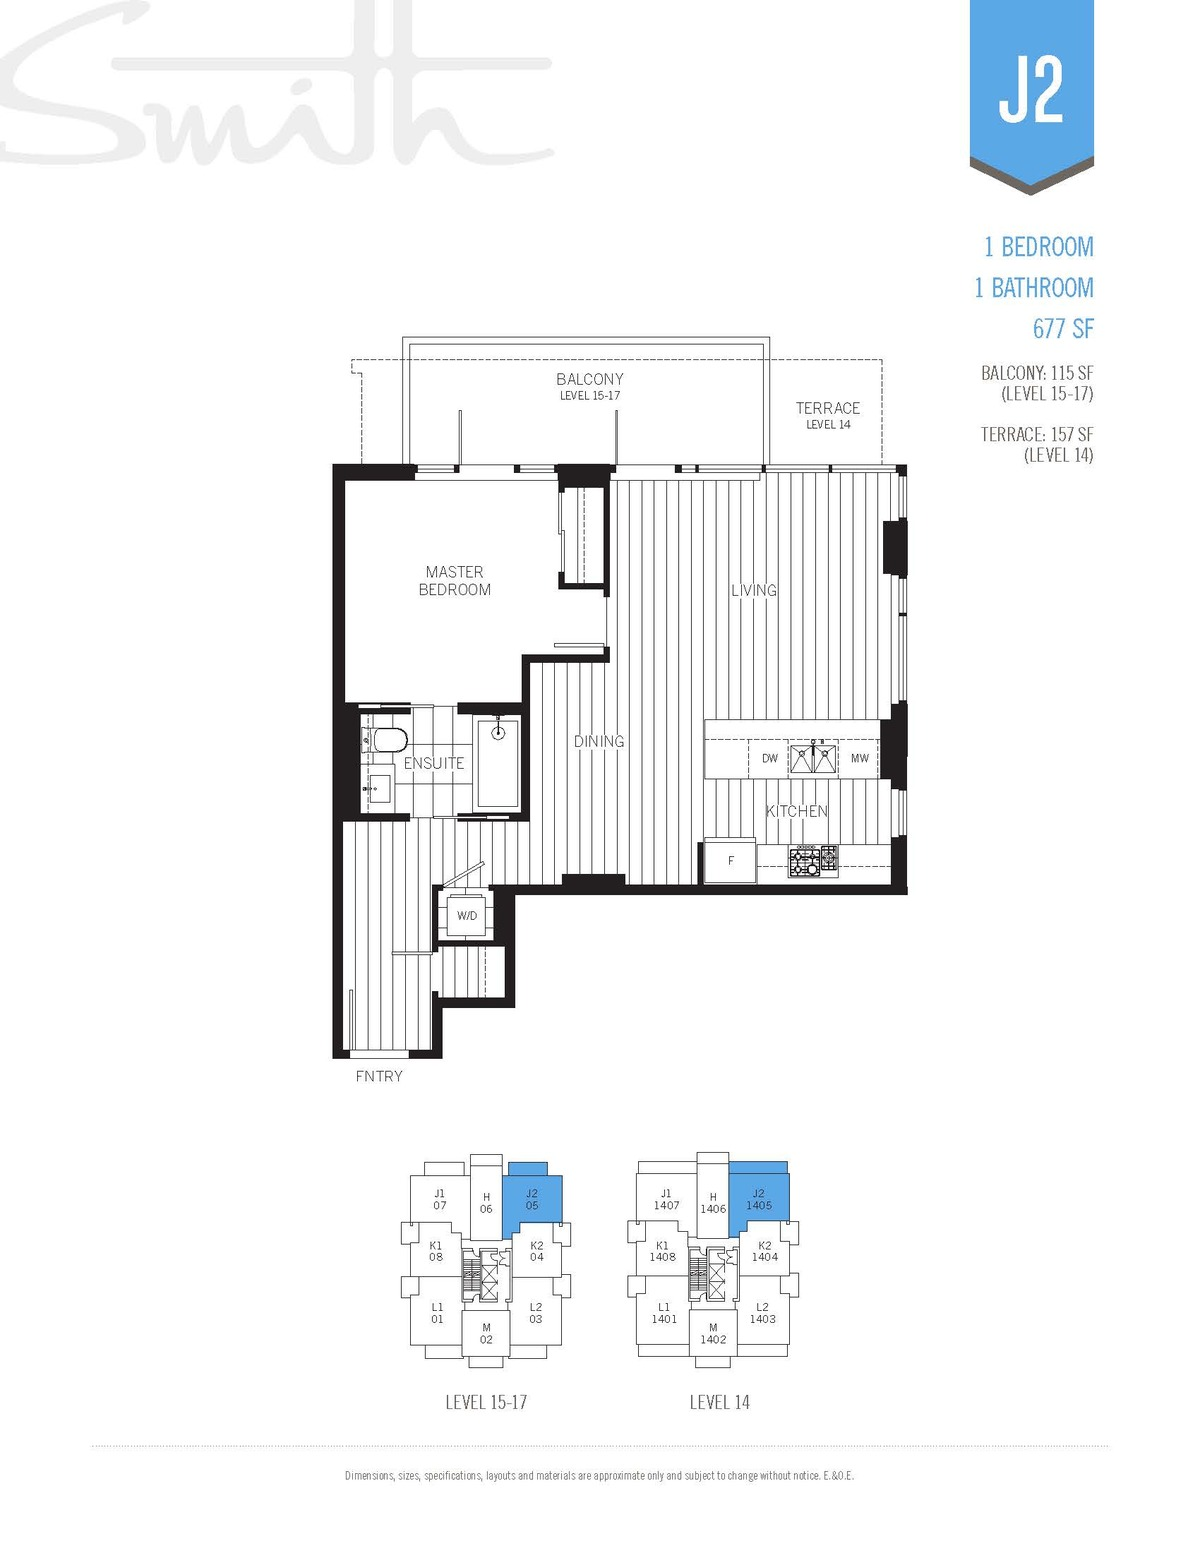 Smith Floorplan J2